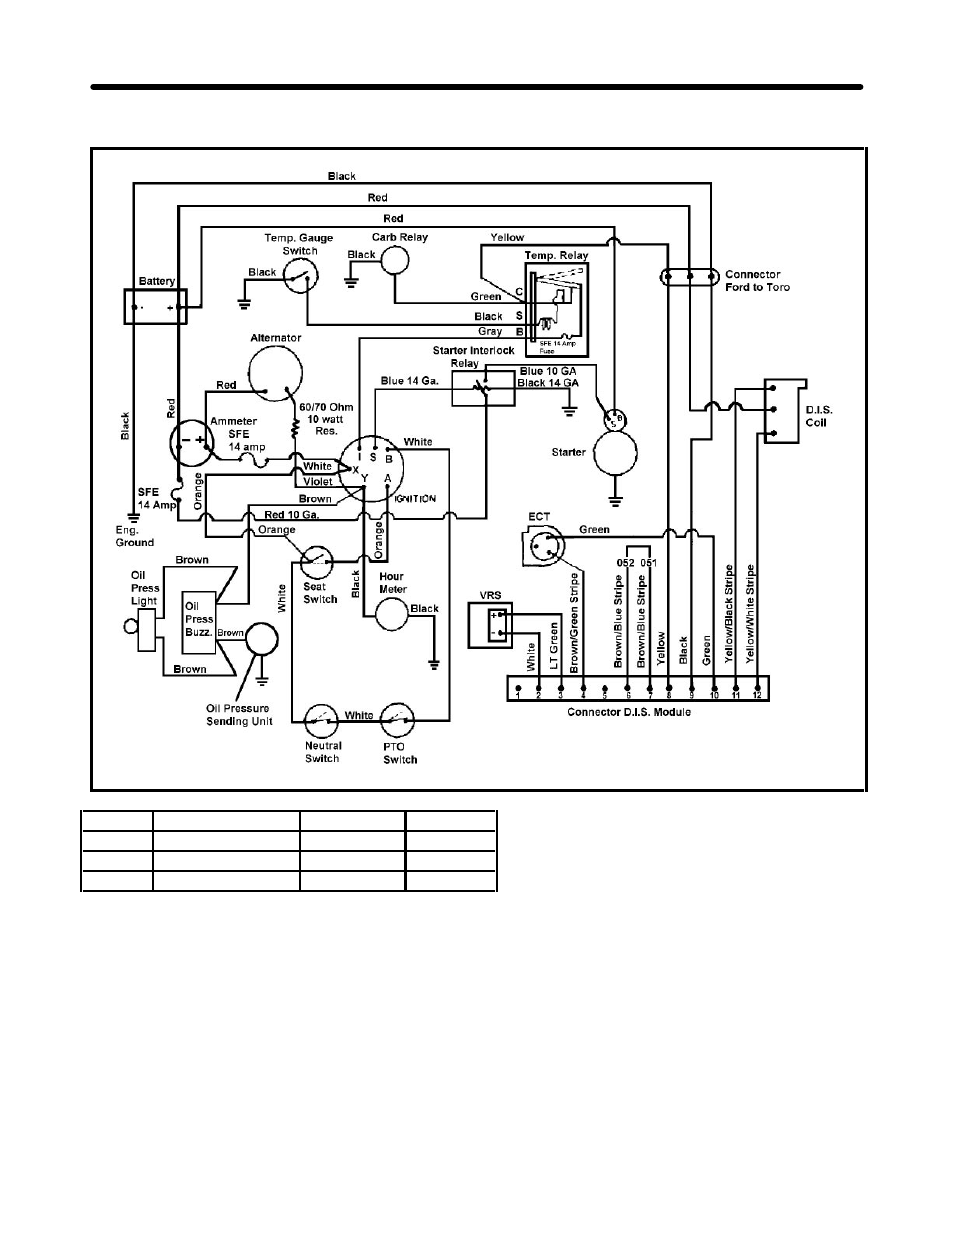 Electrical systems, Electrical, Systems | Toro GROUNDSMASTER 345 User  Manual | Page 58 / 84